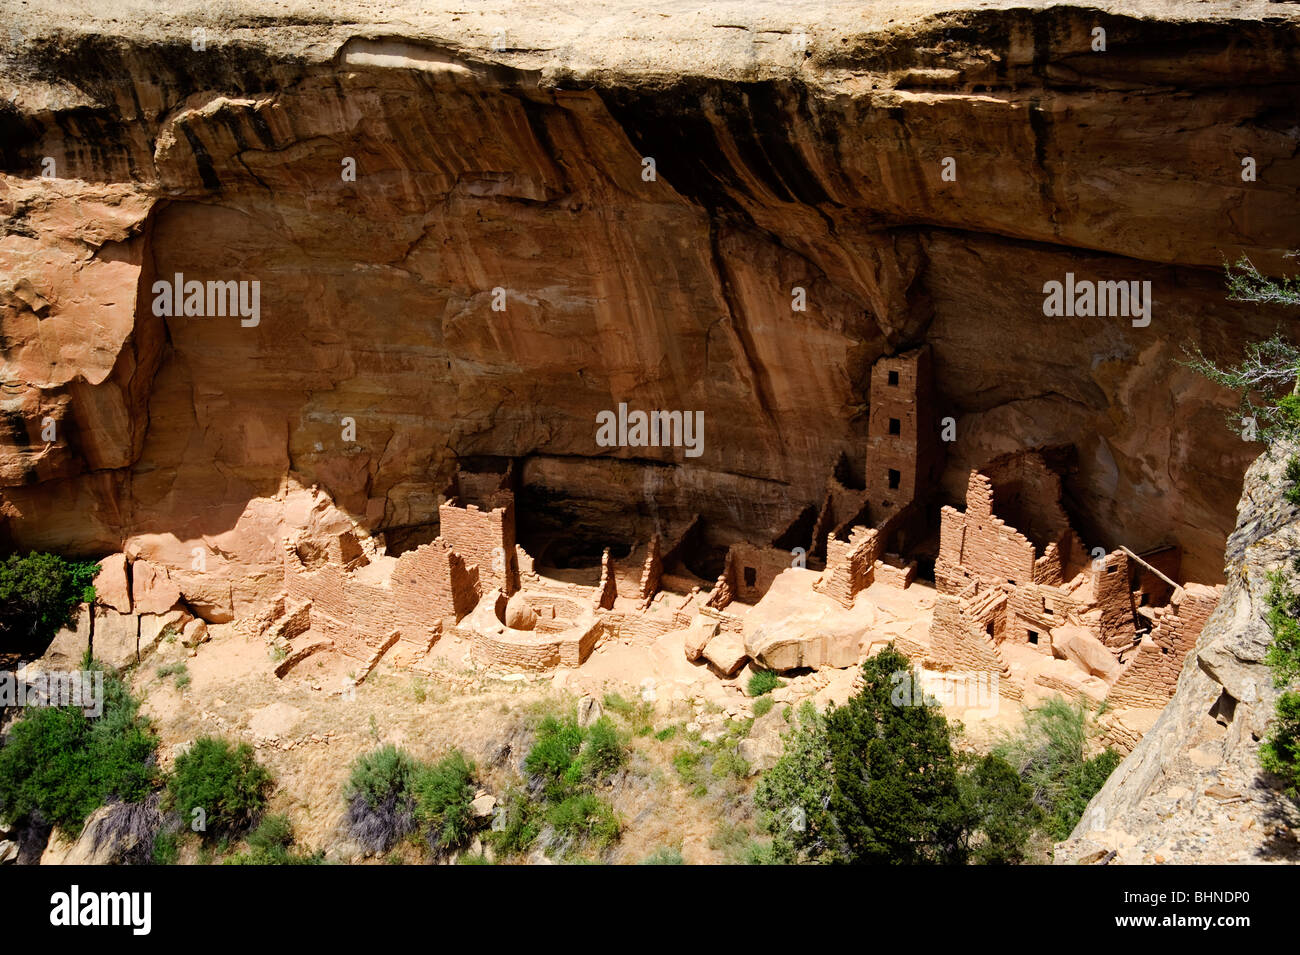 Mesa Verde Indian Ruins, Cliff dwellers ancient homes in Mesa Verde National Park. - Stock Image